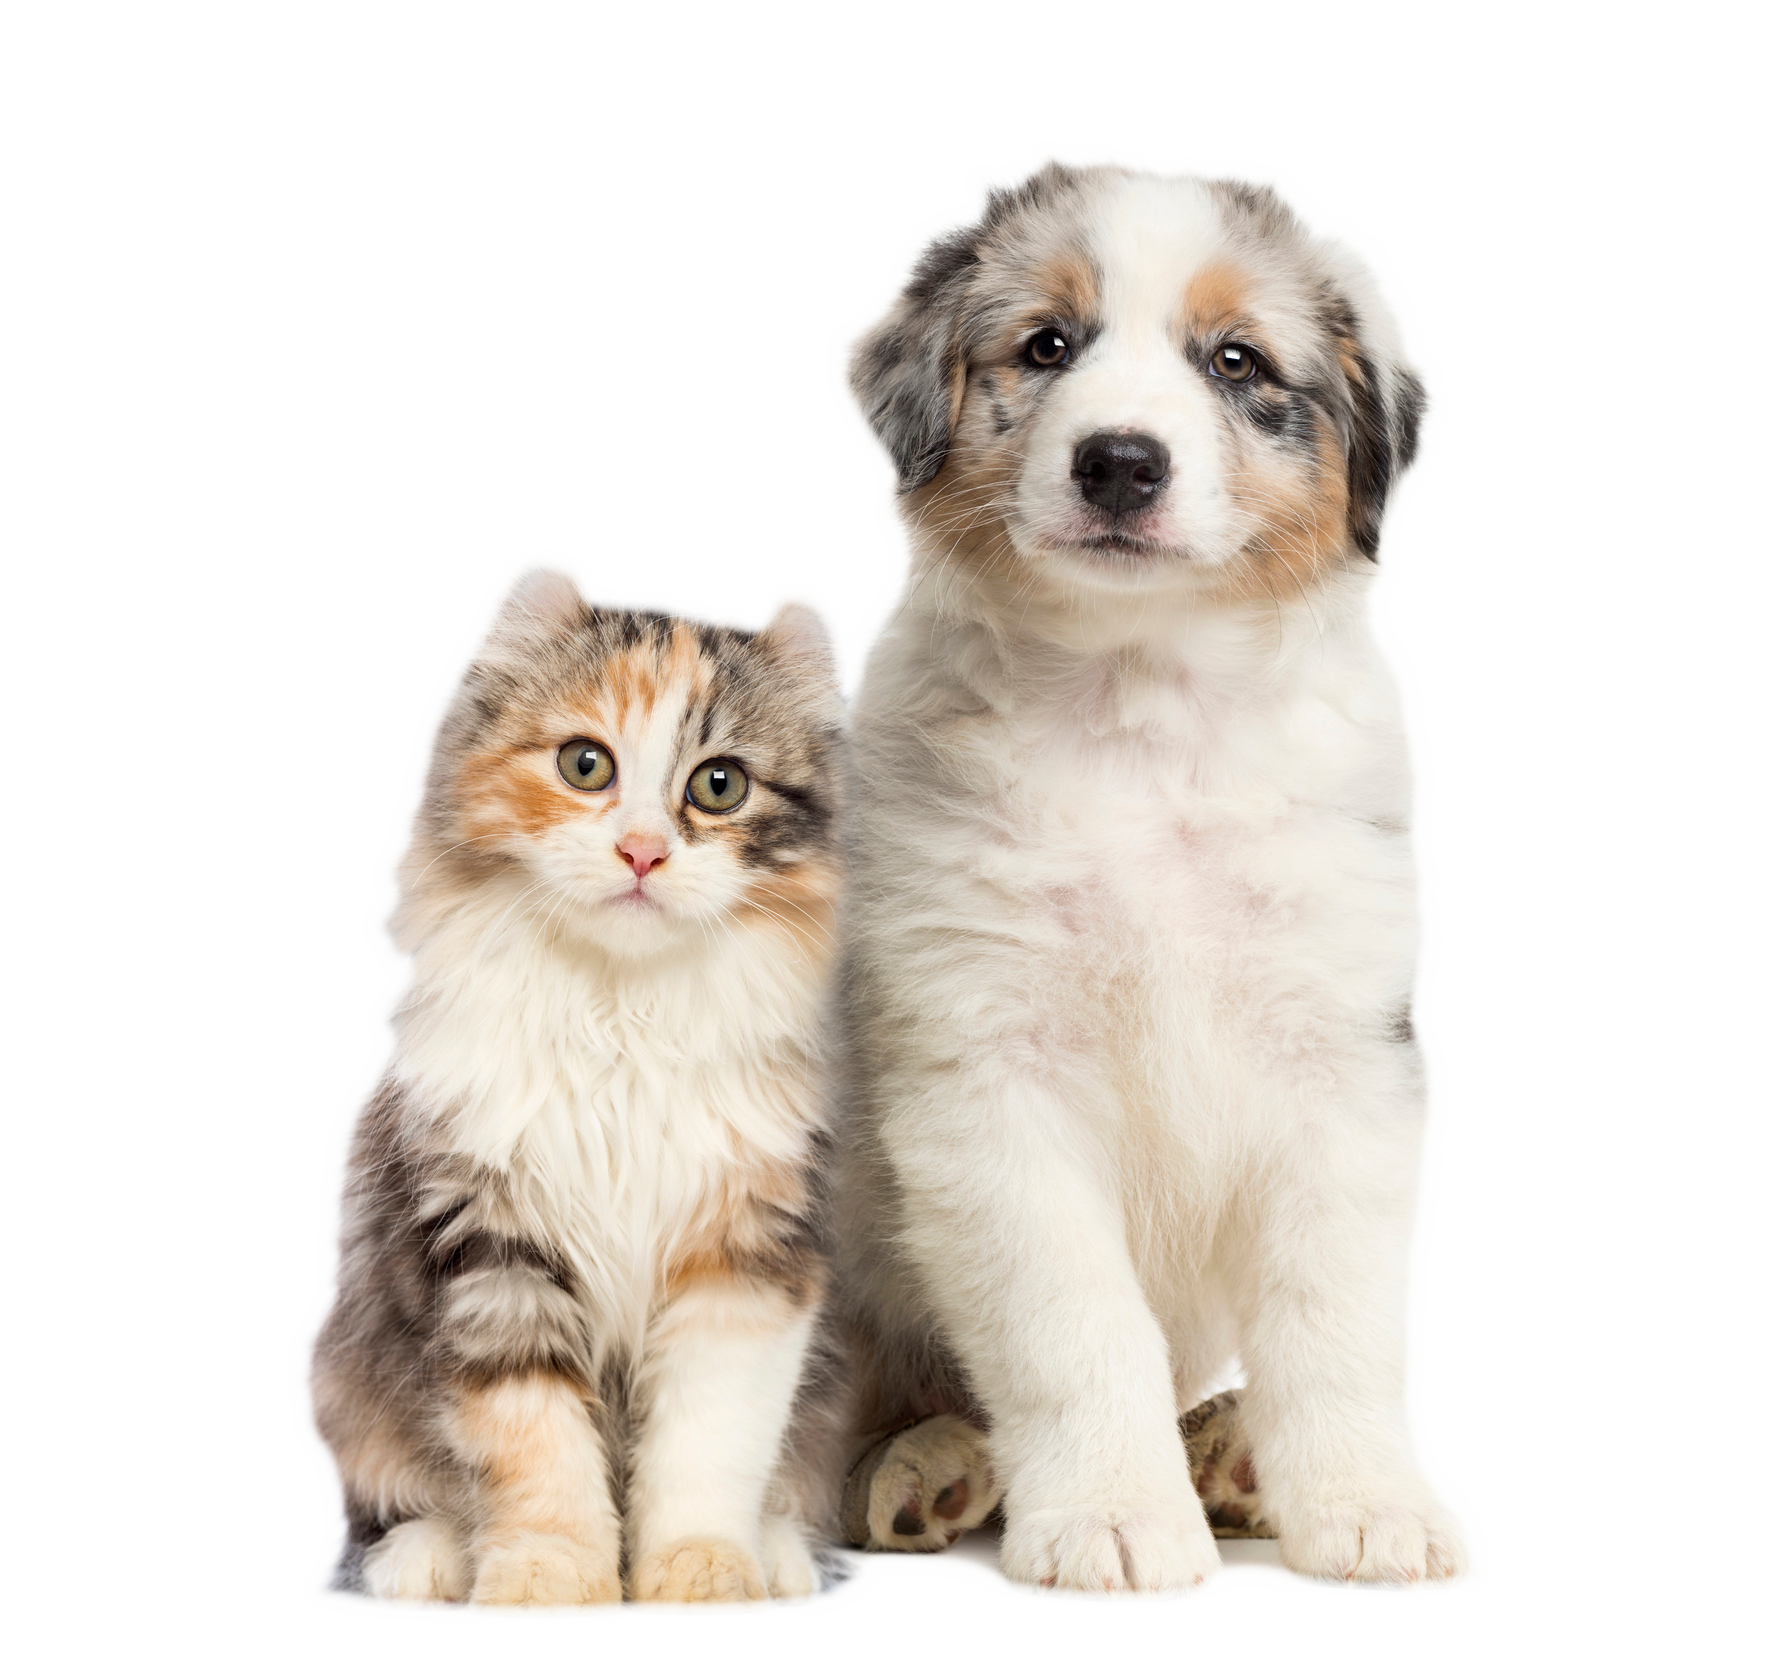 cat-and-dog-blogs